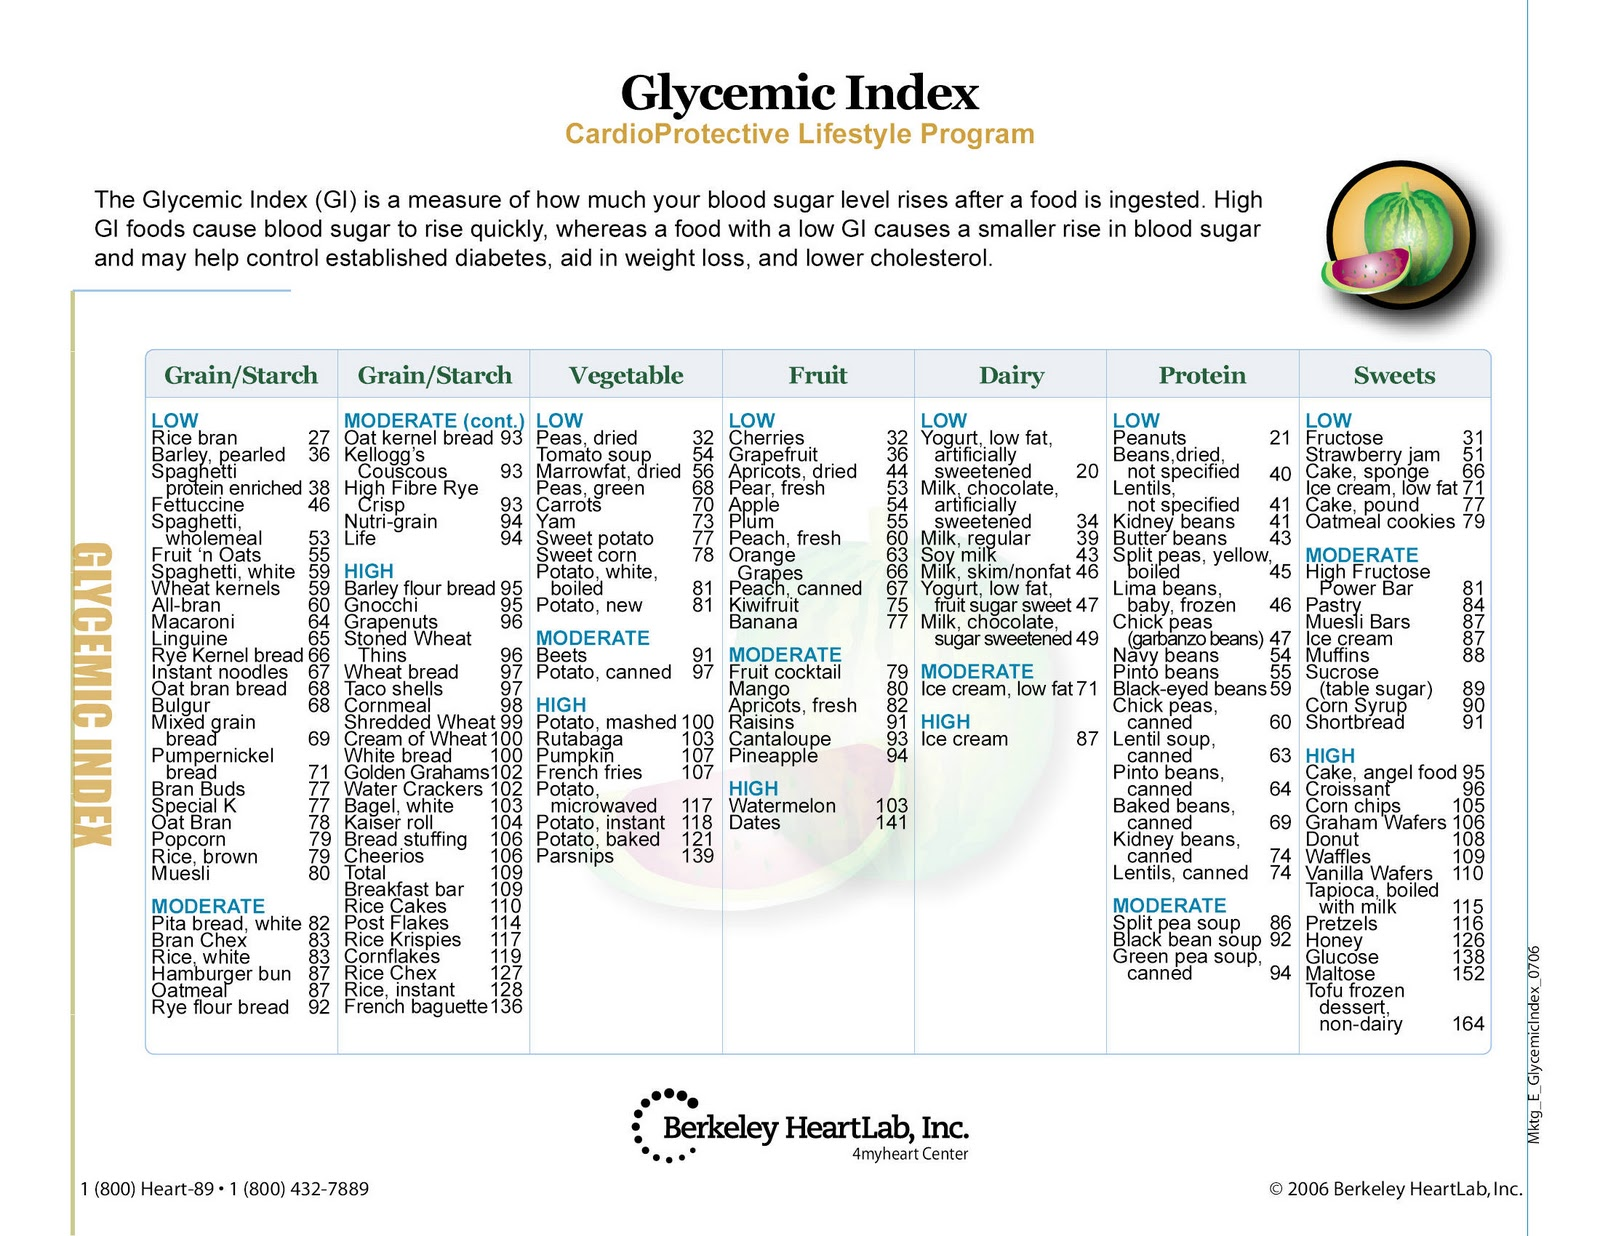 Personalized weight loss program low glycemic index foods also gi chart rehagedeemperor rh